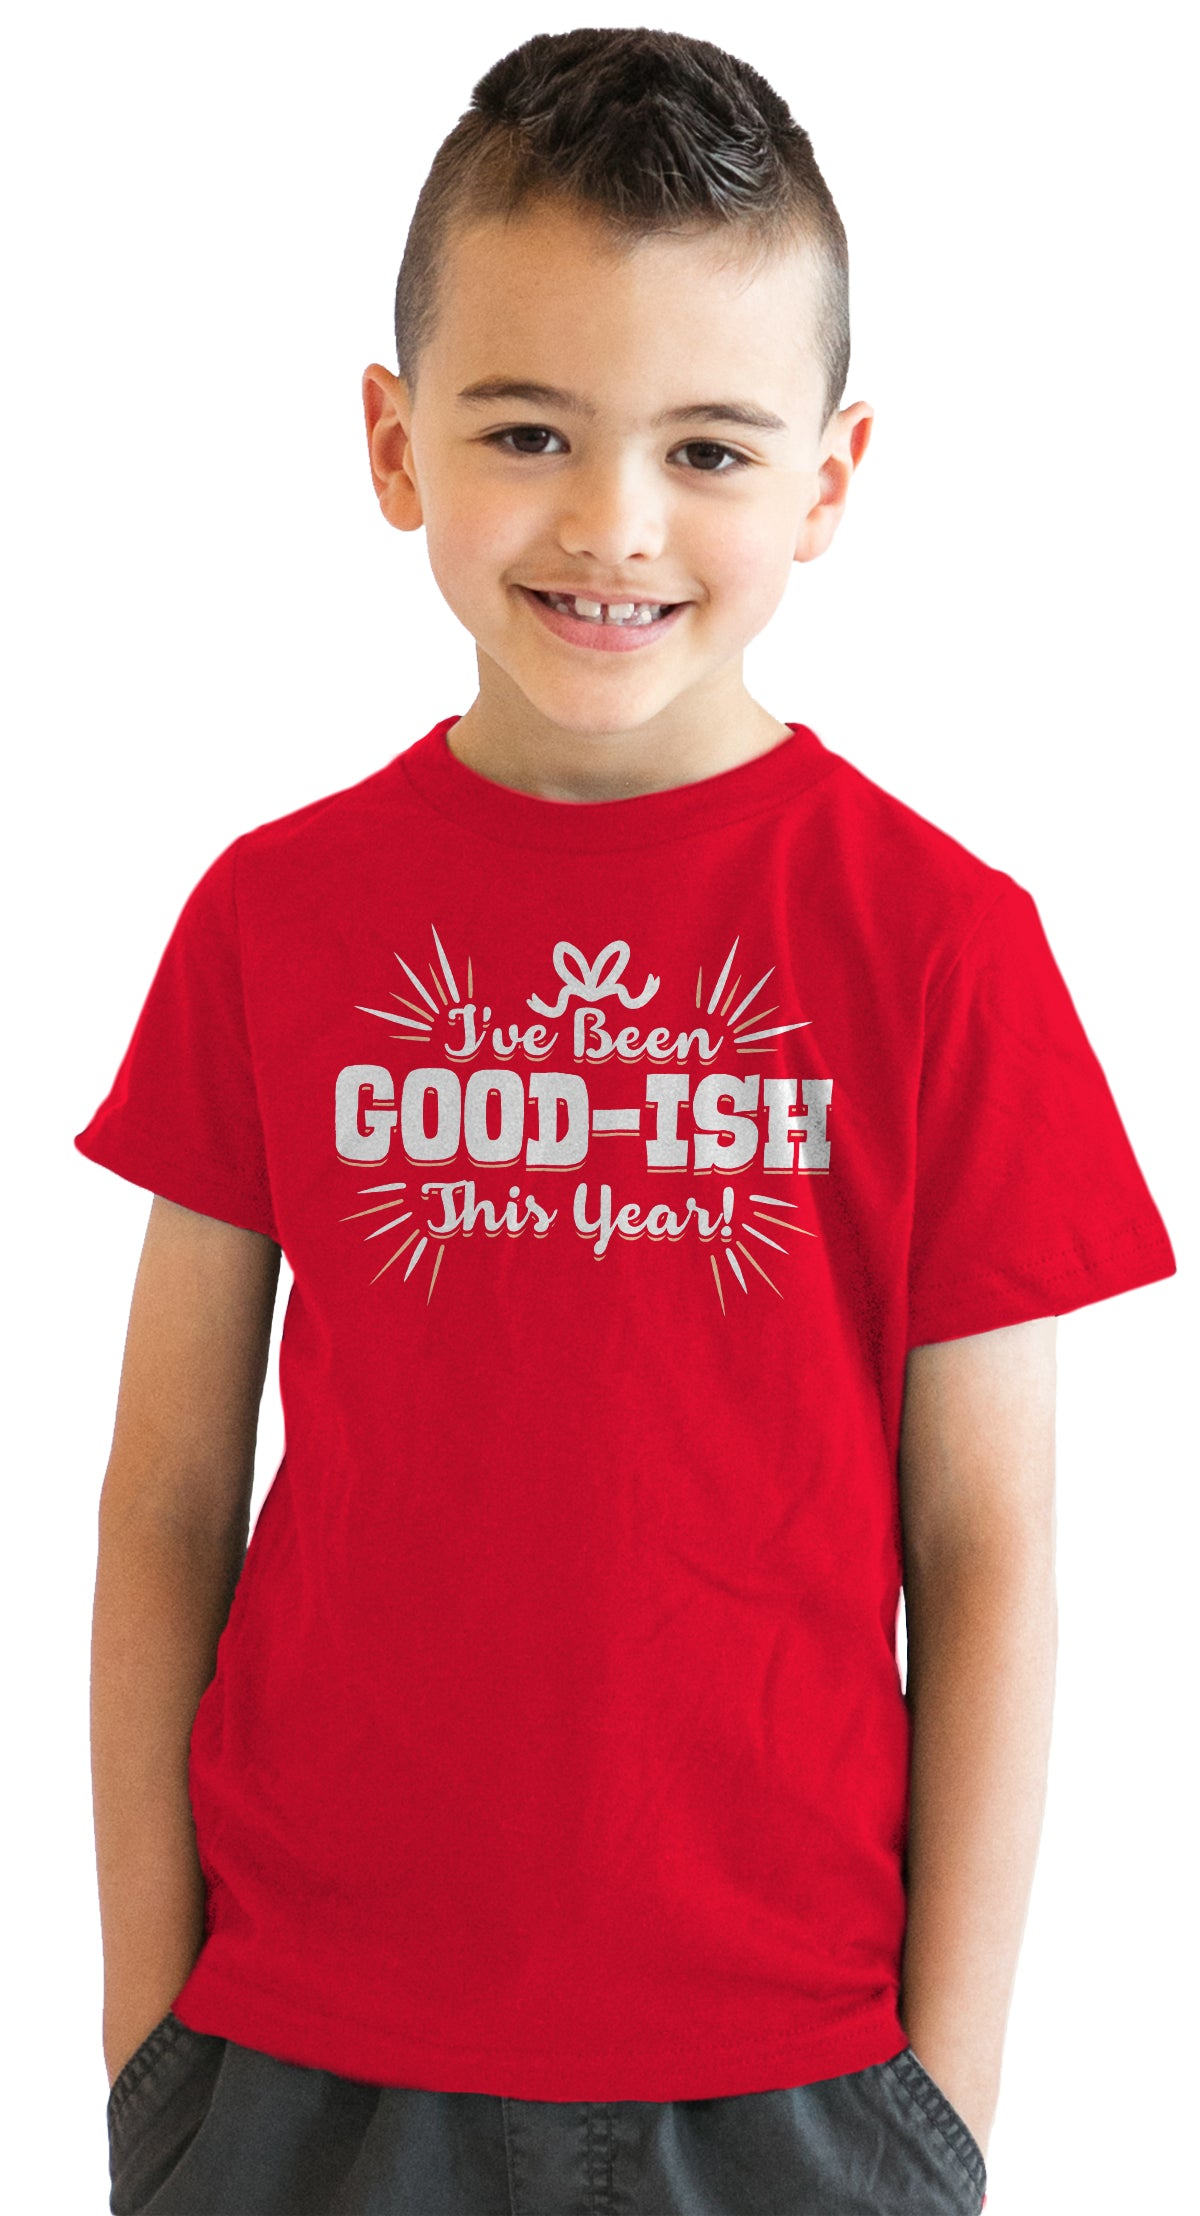 Youth Ive Been Goodish This Year Tshirt Funny Christmas Holiday ...